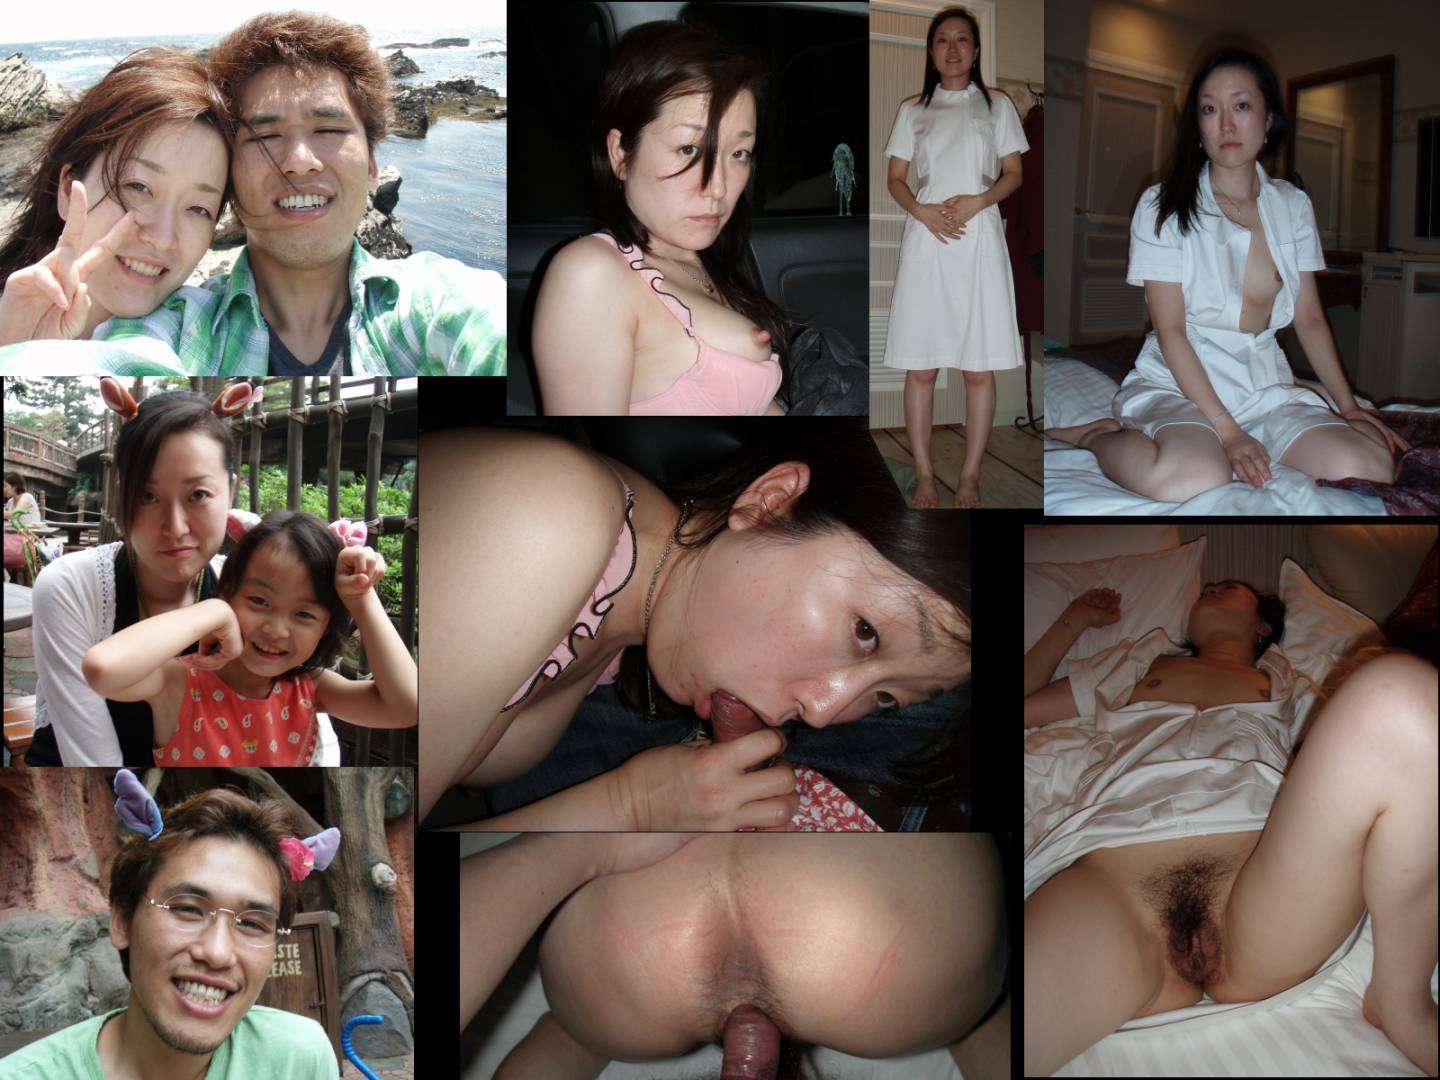 Elegant & cute Japanese mom's disgusting private photos